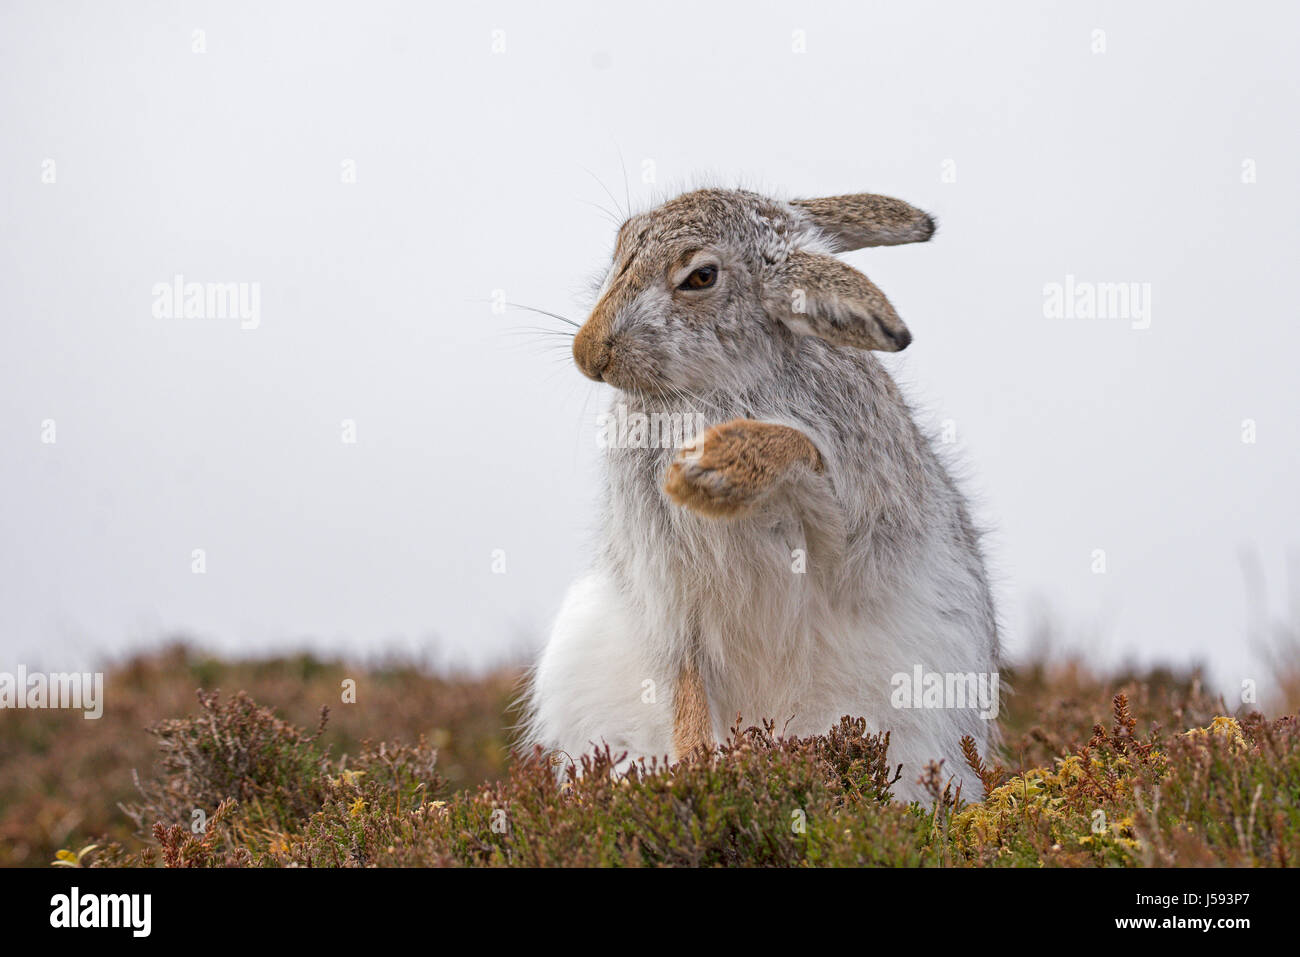 Mountain hare in winter coat grooming (Lepus timidus) - Stock Image